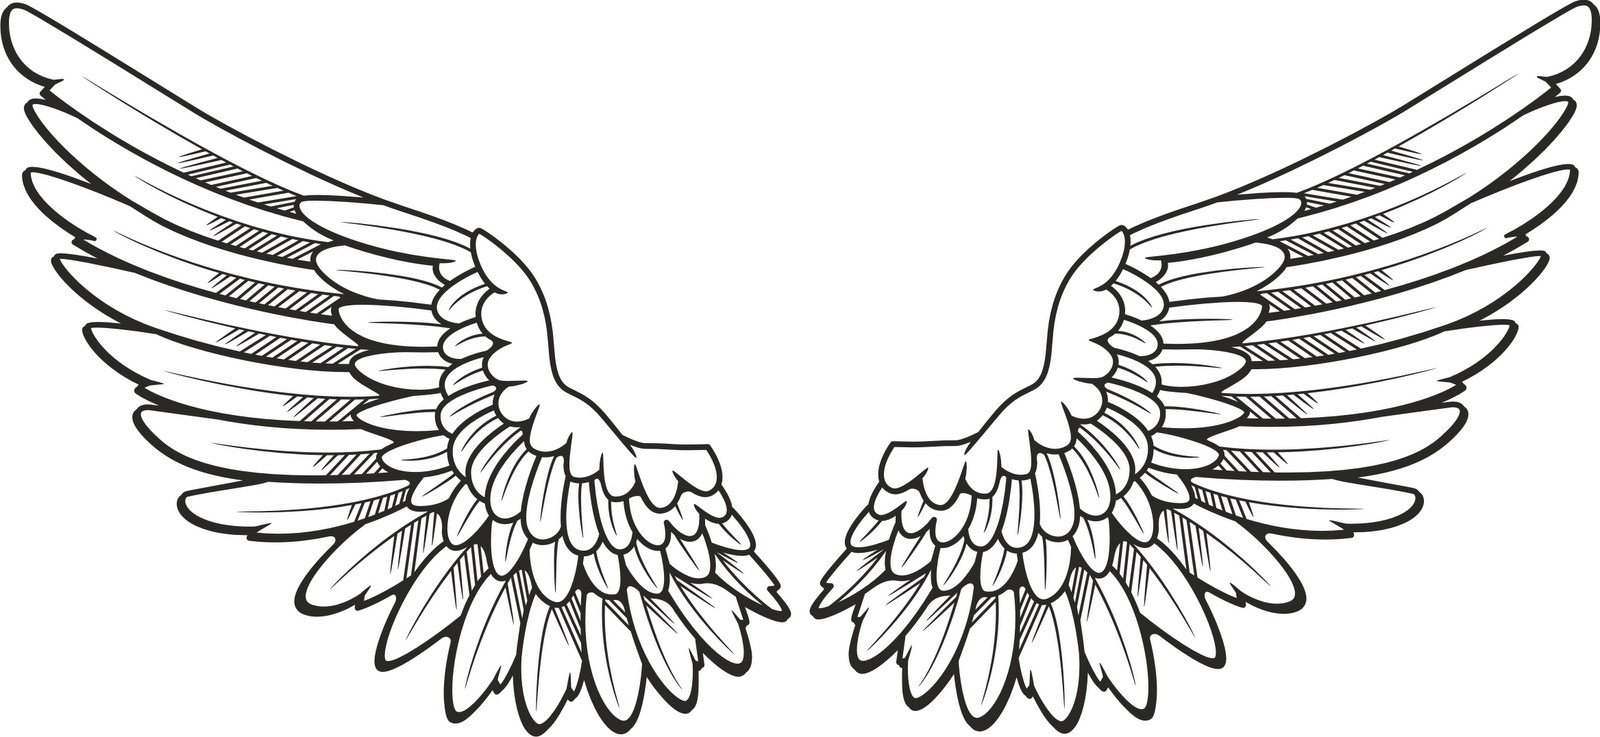 bird wings clipart.